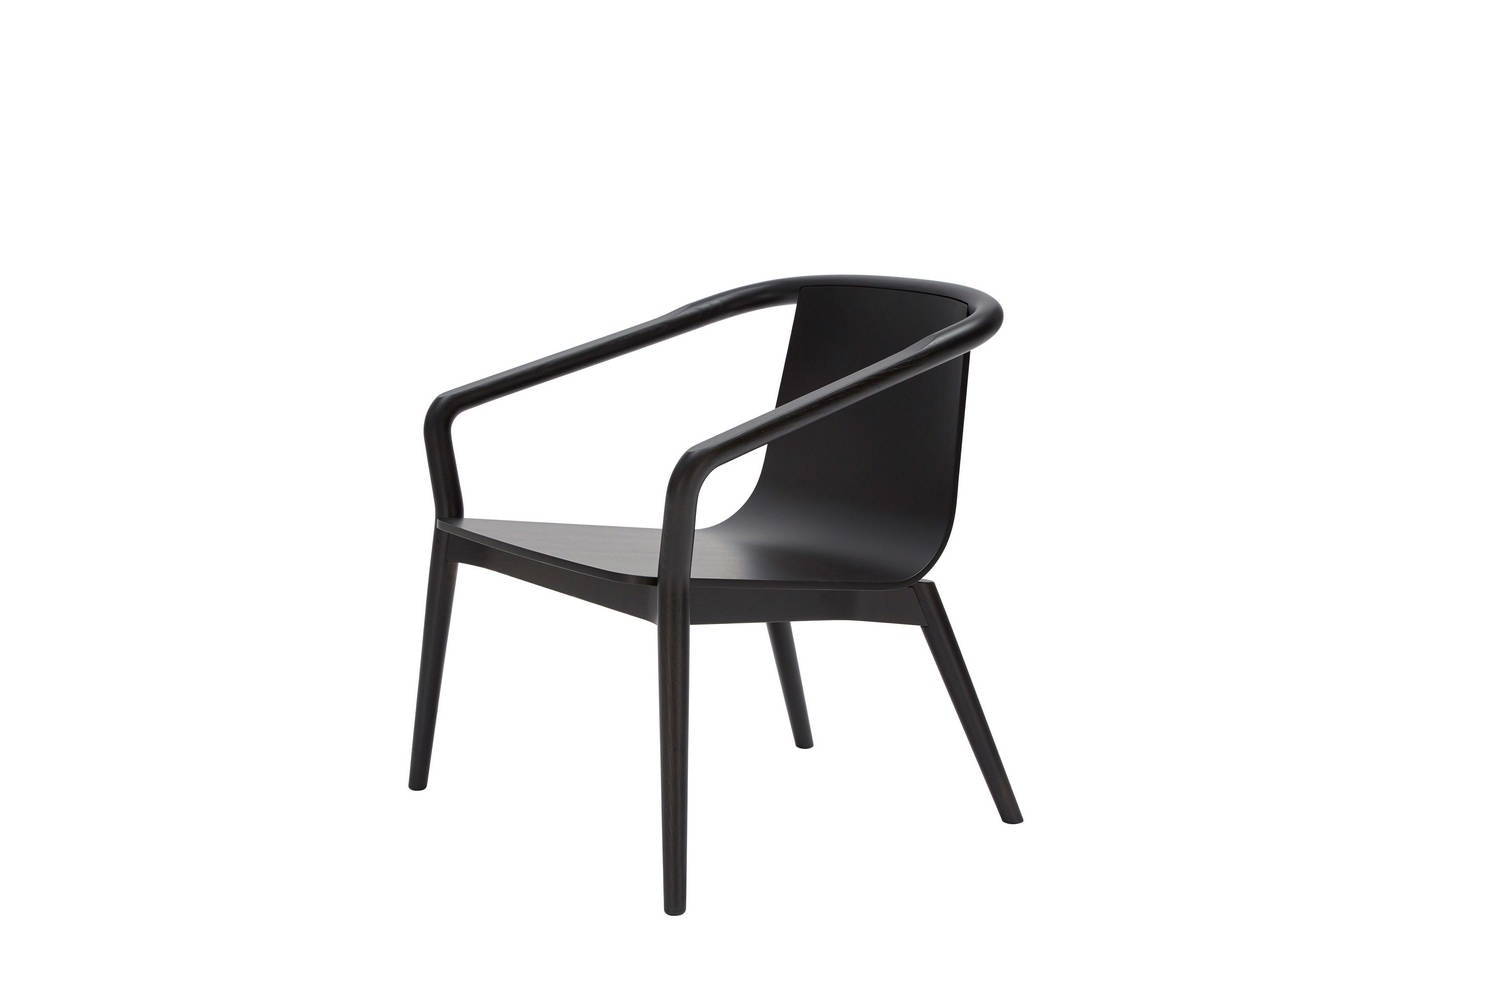 Thomas Armchair by Metrica for SP01